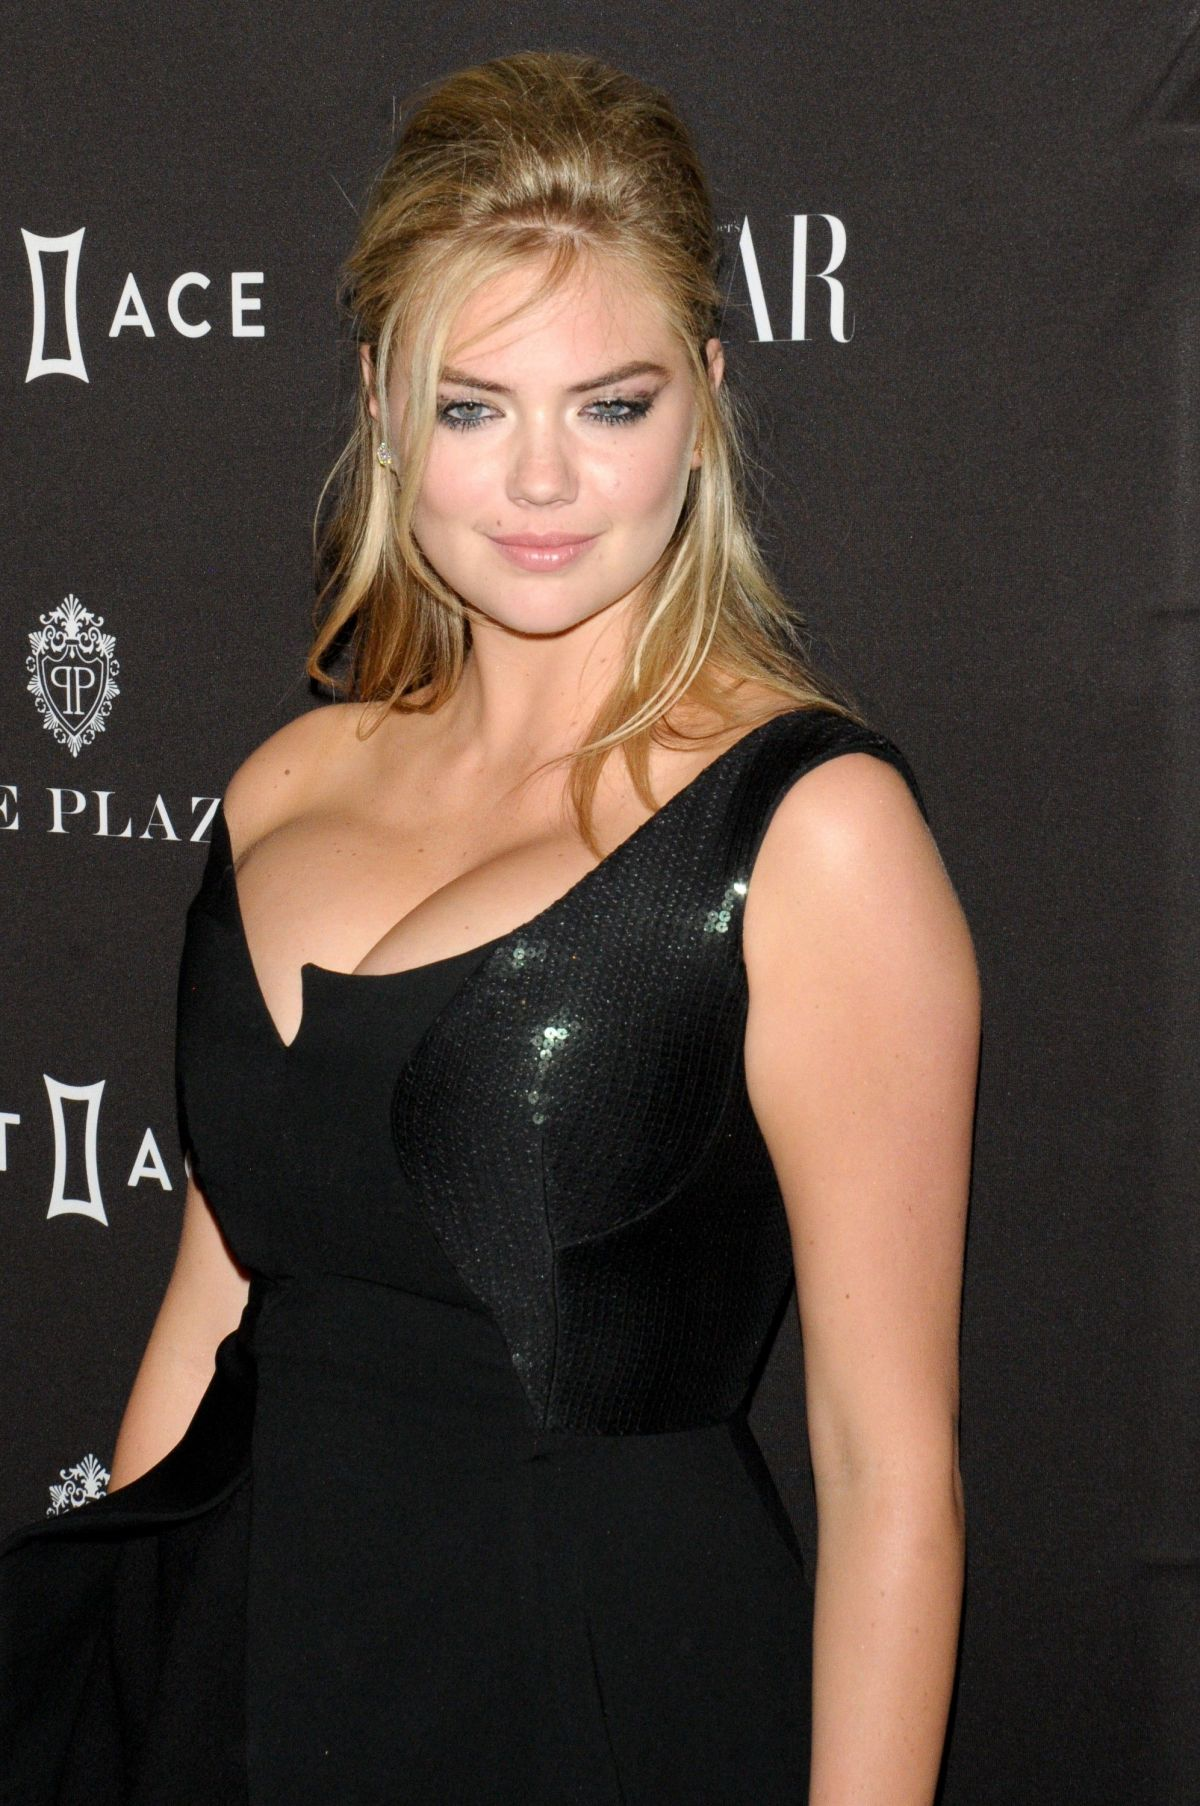 2015 S Most Popular Halloween Costumes By State Map: KATE UPTON At 2015 Harper's Bazaar Icons Event In New York